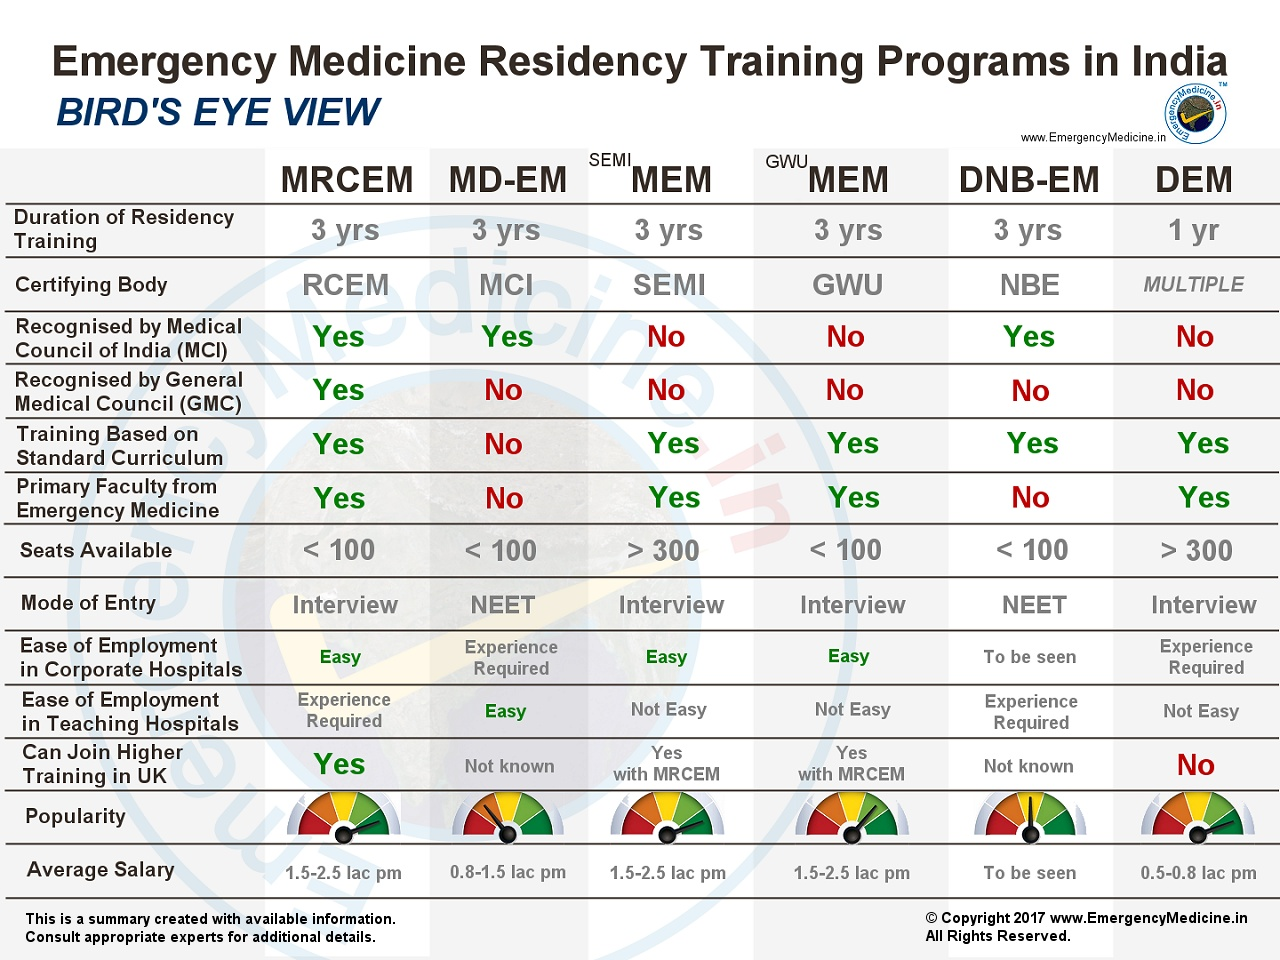 EmergencyMedicine in